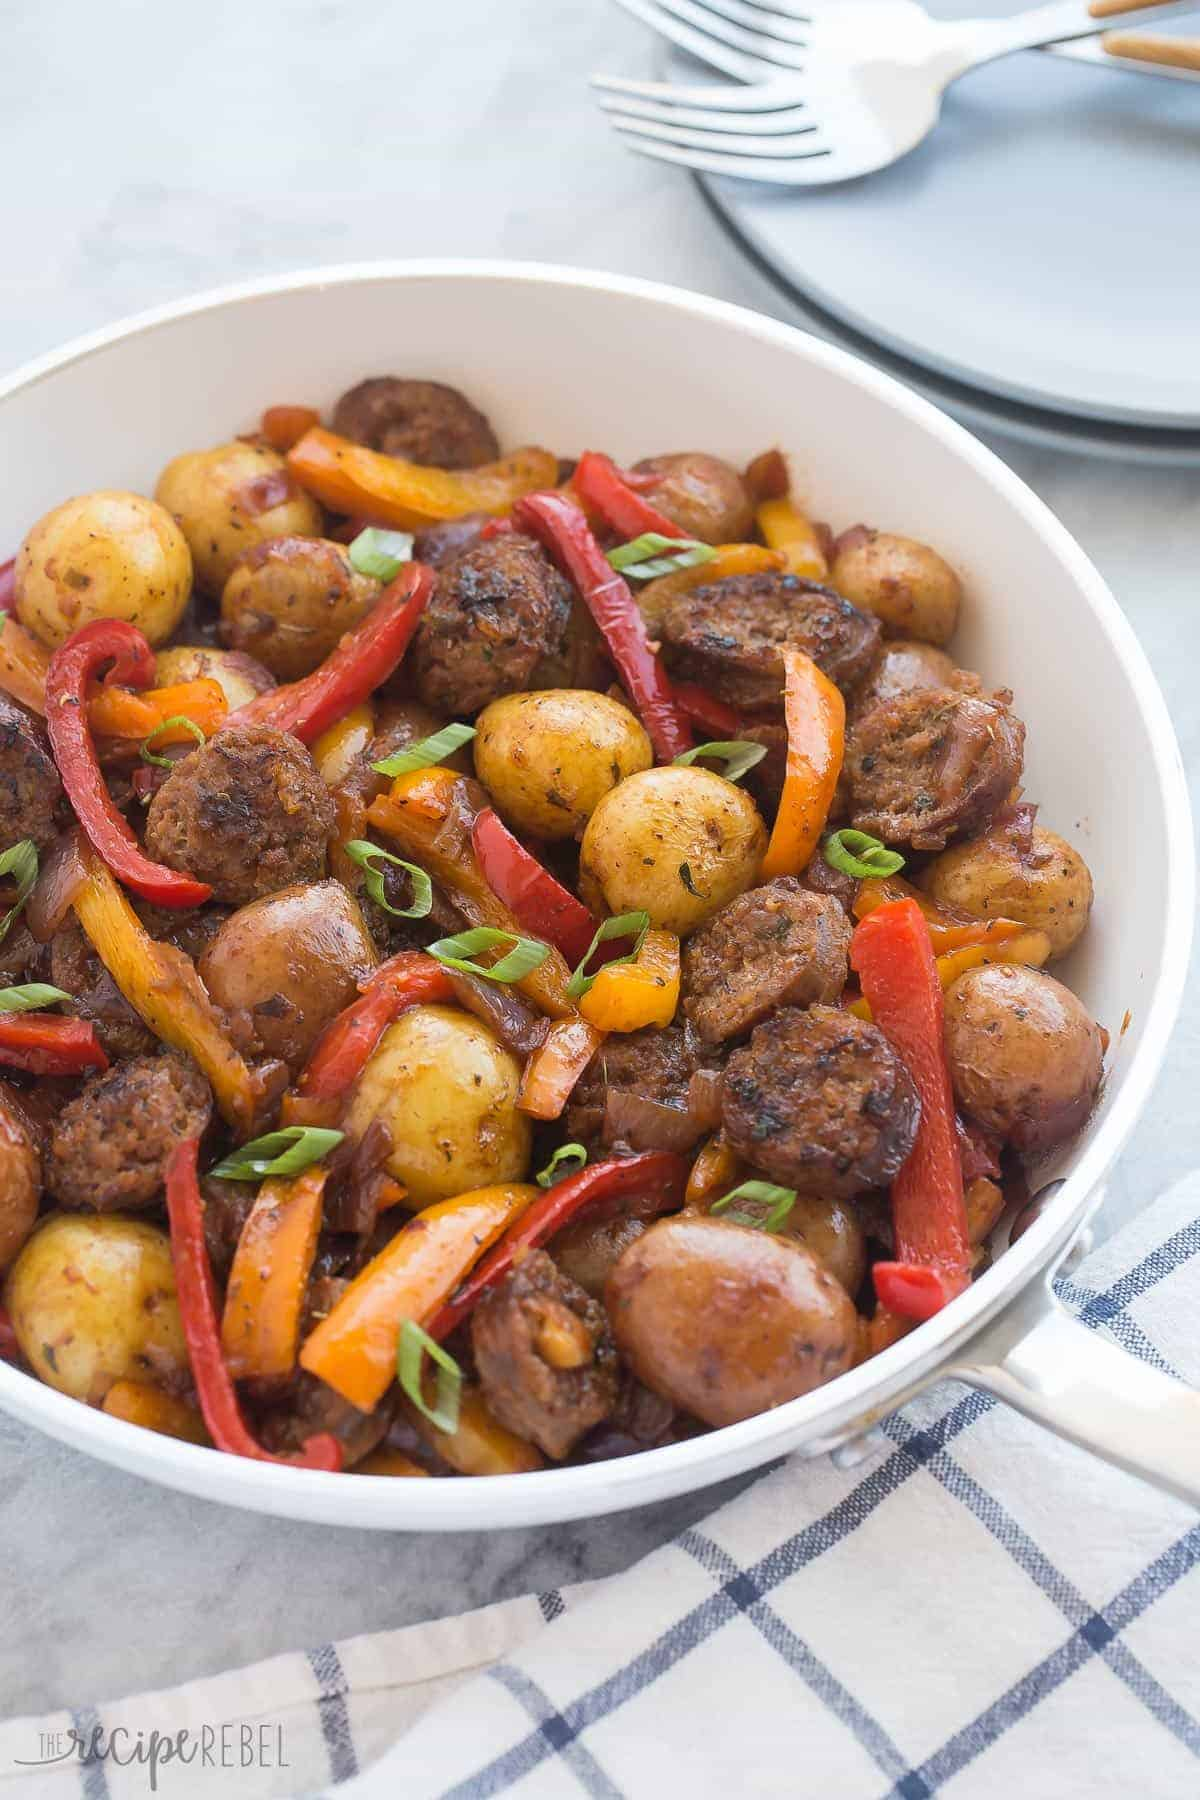 30 Minute BBQ Sausage, Peppers and Potato Skillet Recipe